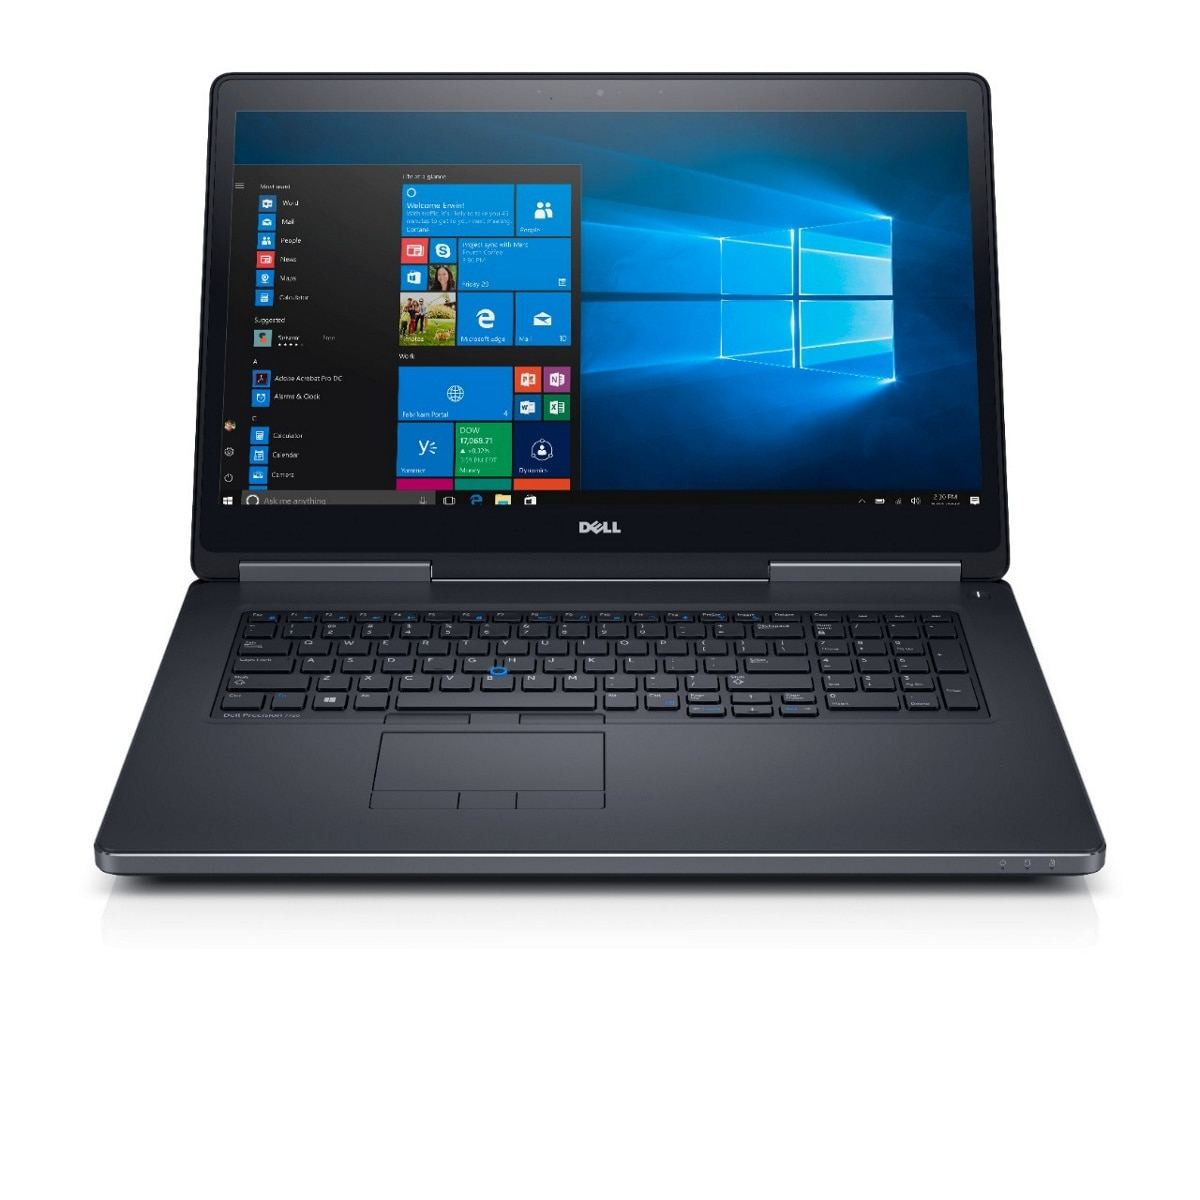 Support for Precision 7720   Overview   Dell US